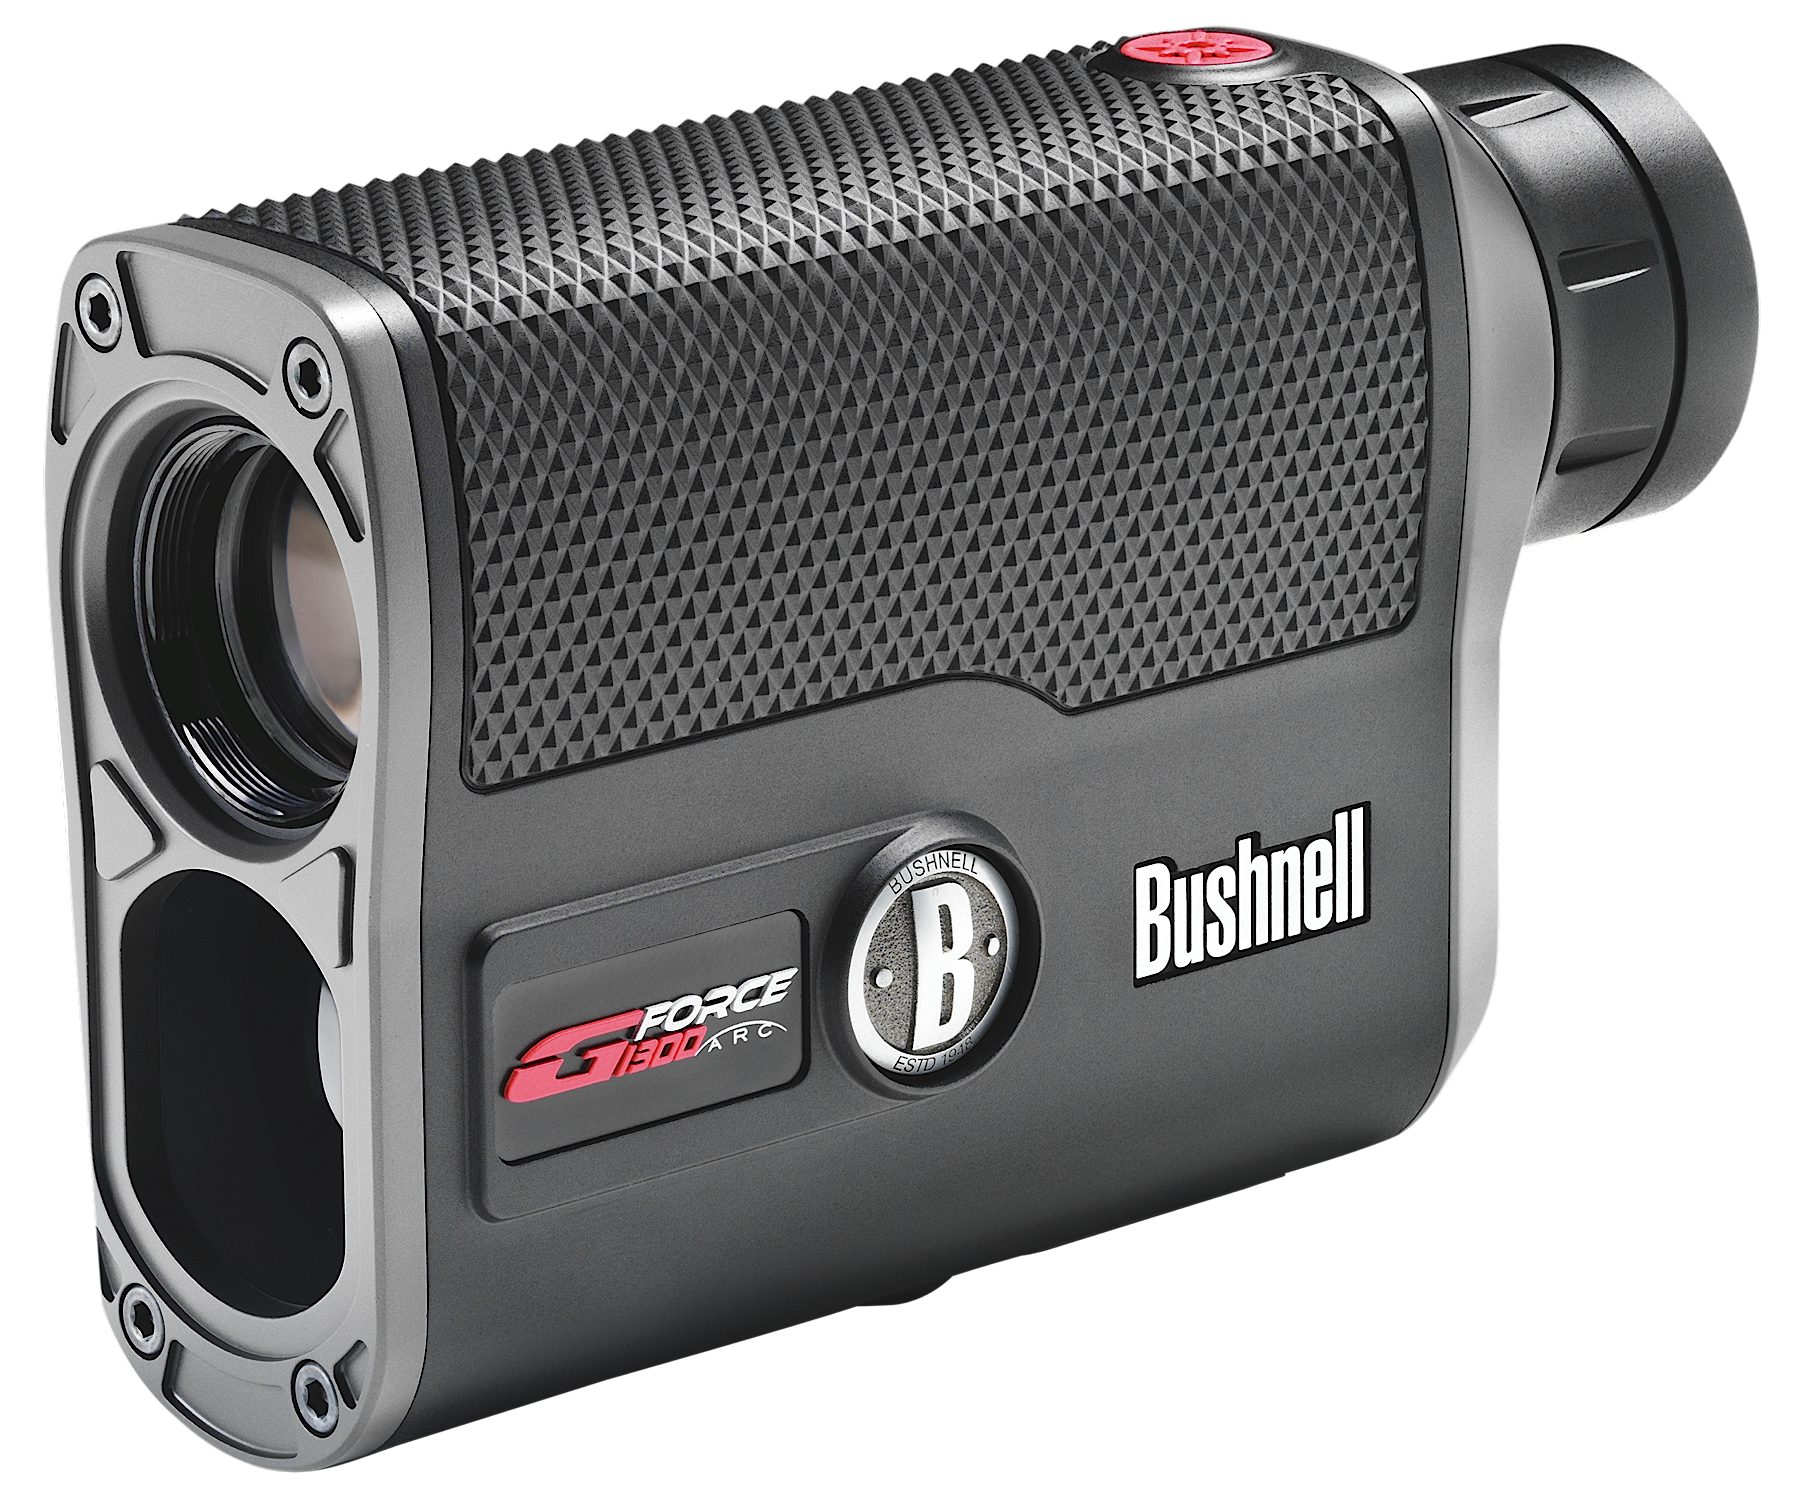 Bushnell 201965 G Force 1300 ARC 6x 21mm Black